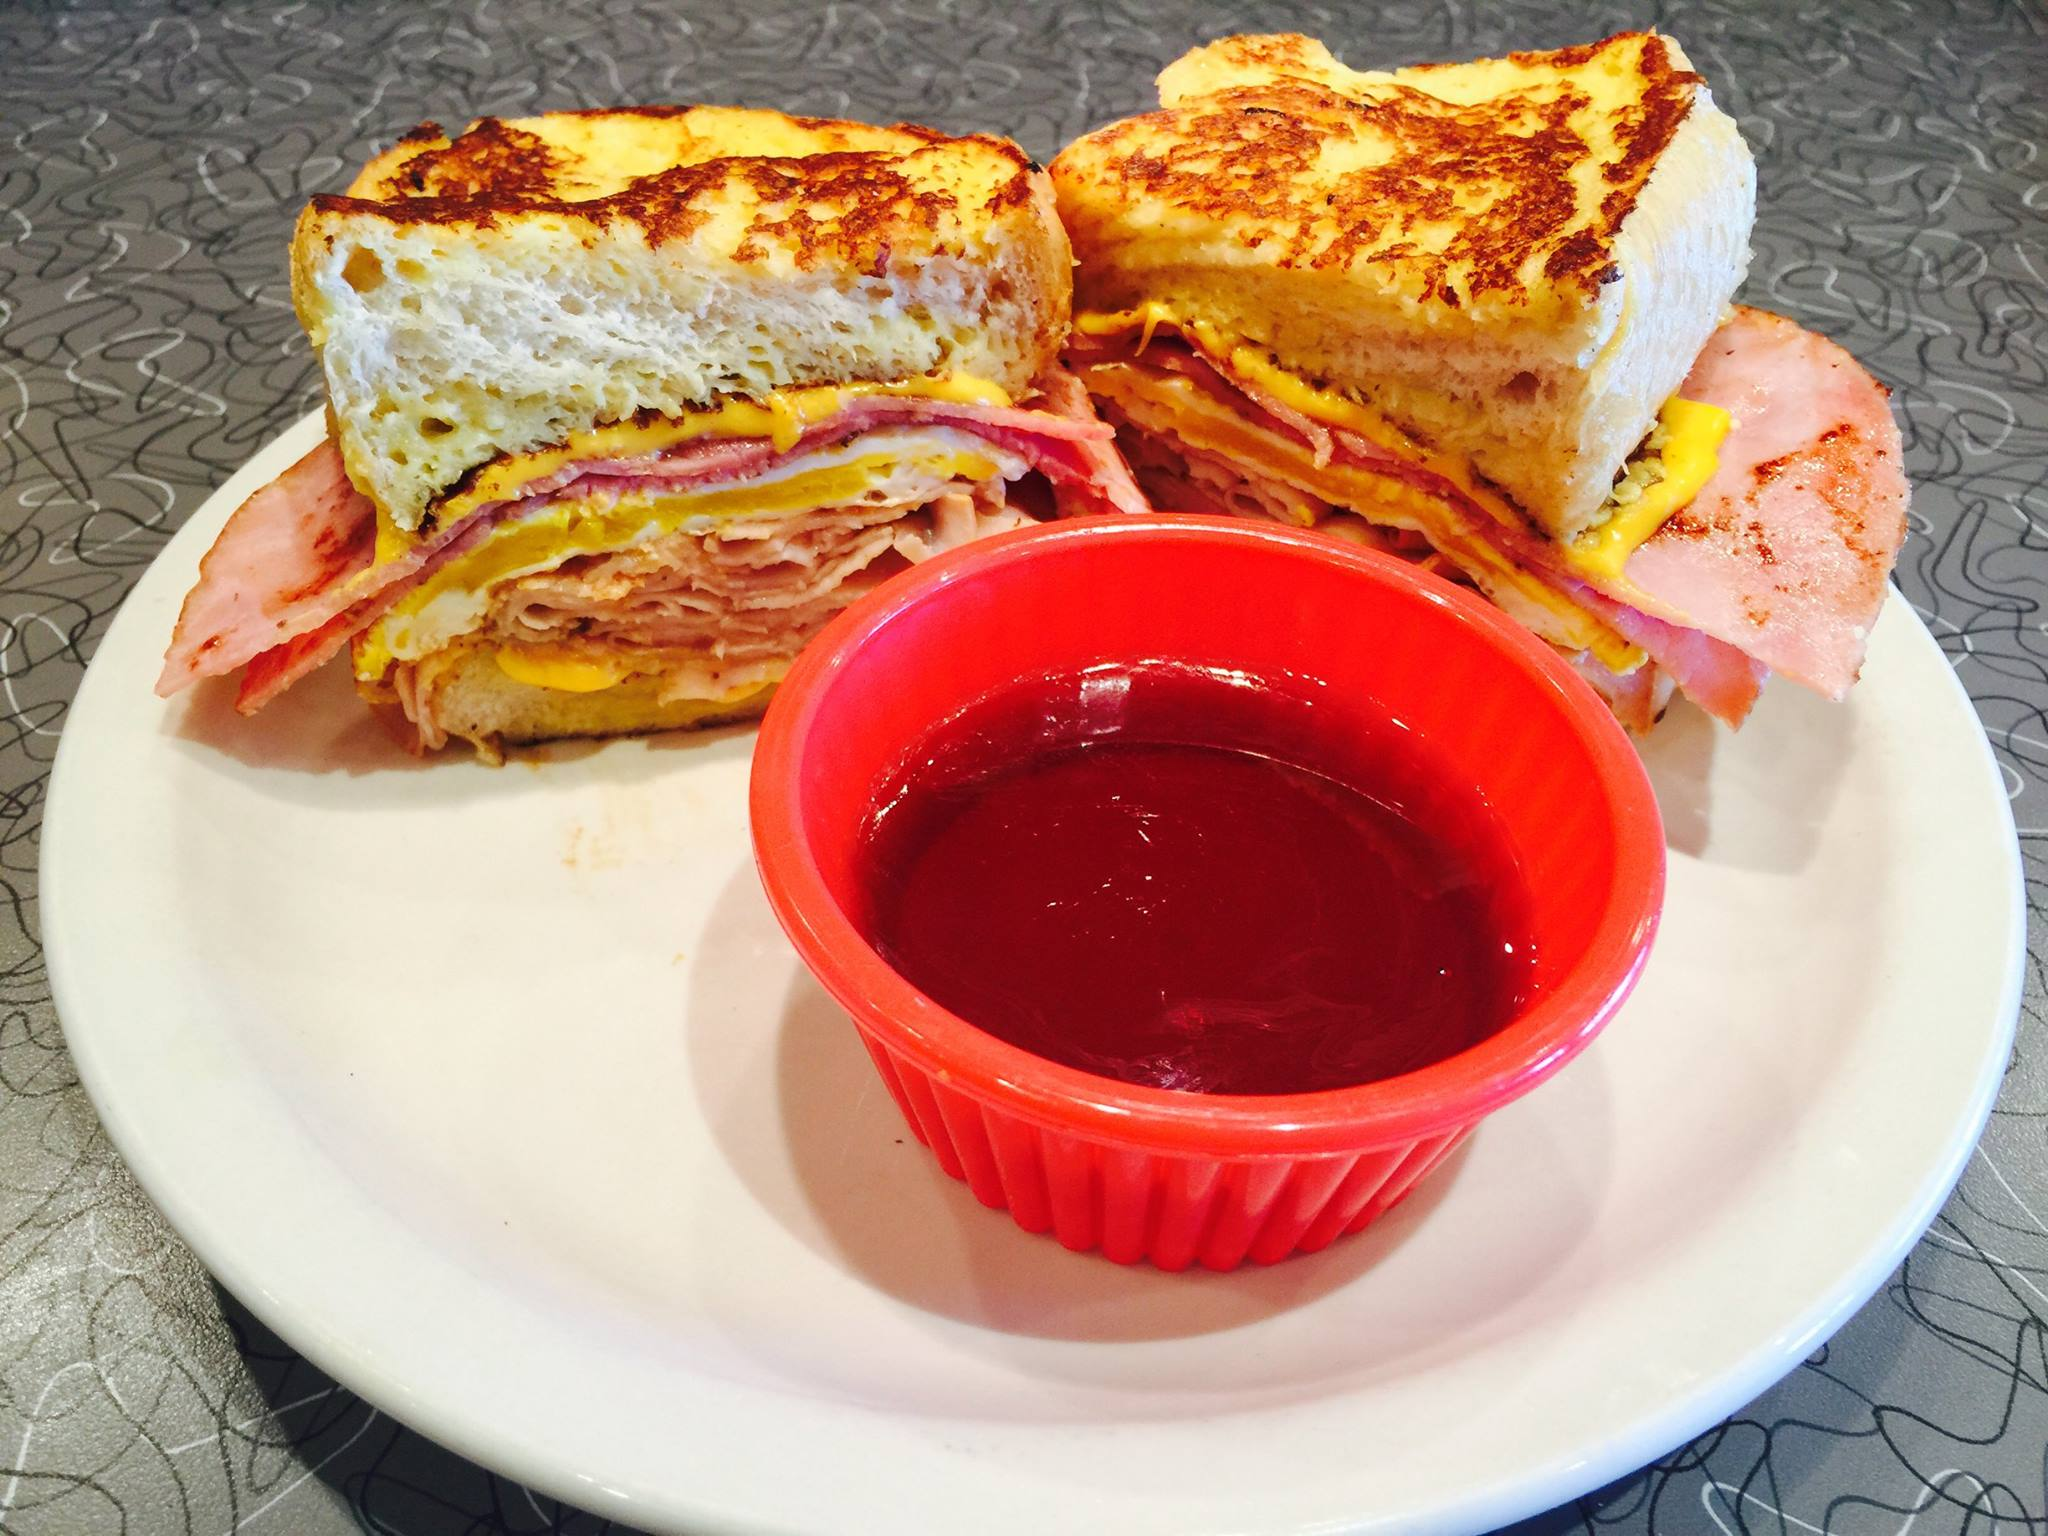 Ham sandwich with cheese and dipping sauce